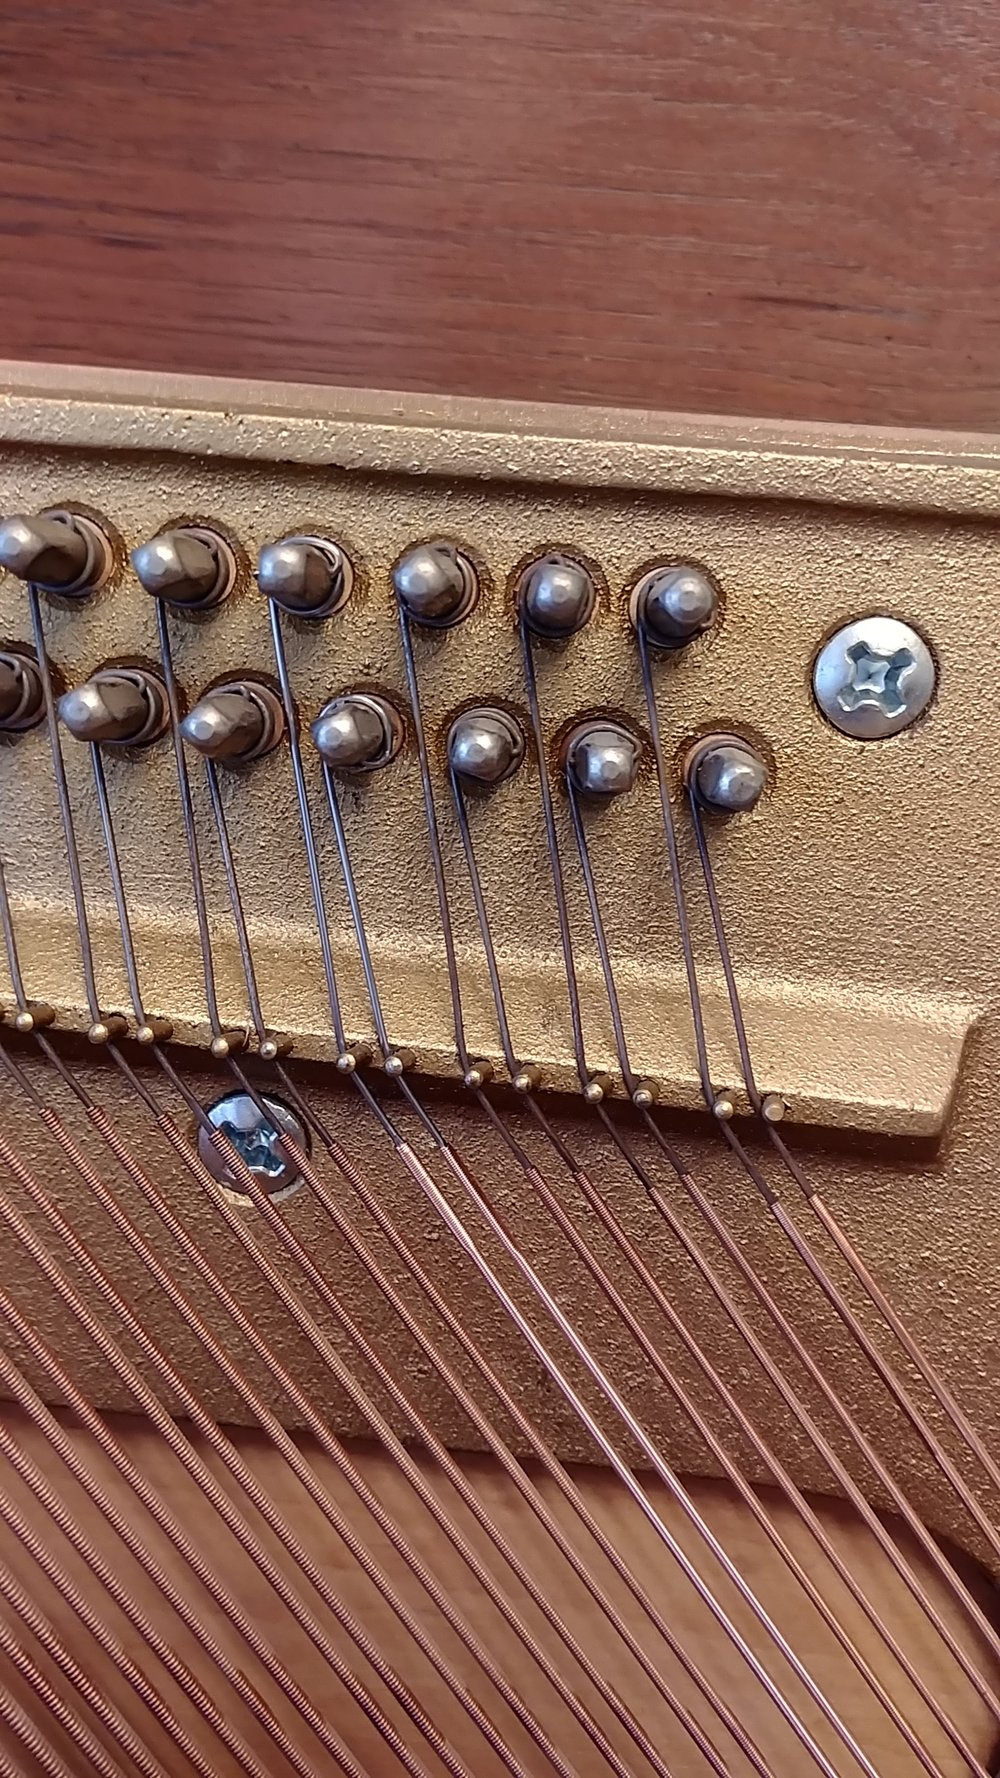 Here a replacement was done on a bass string bi-chord.